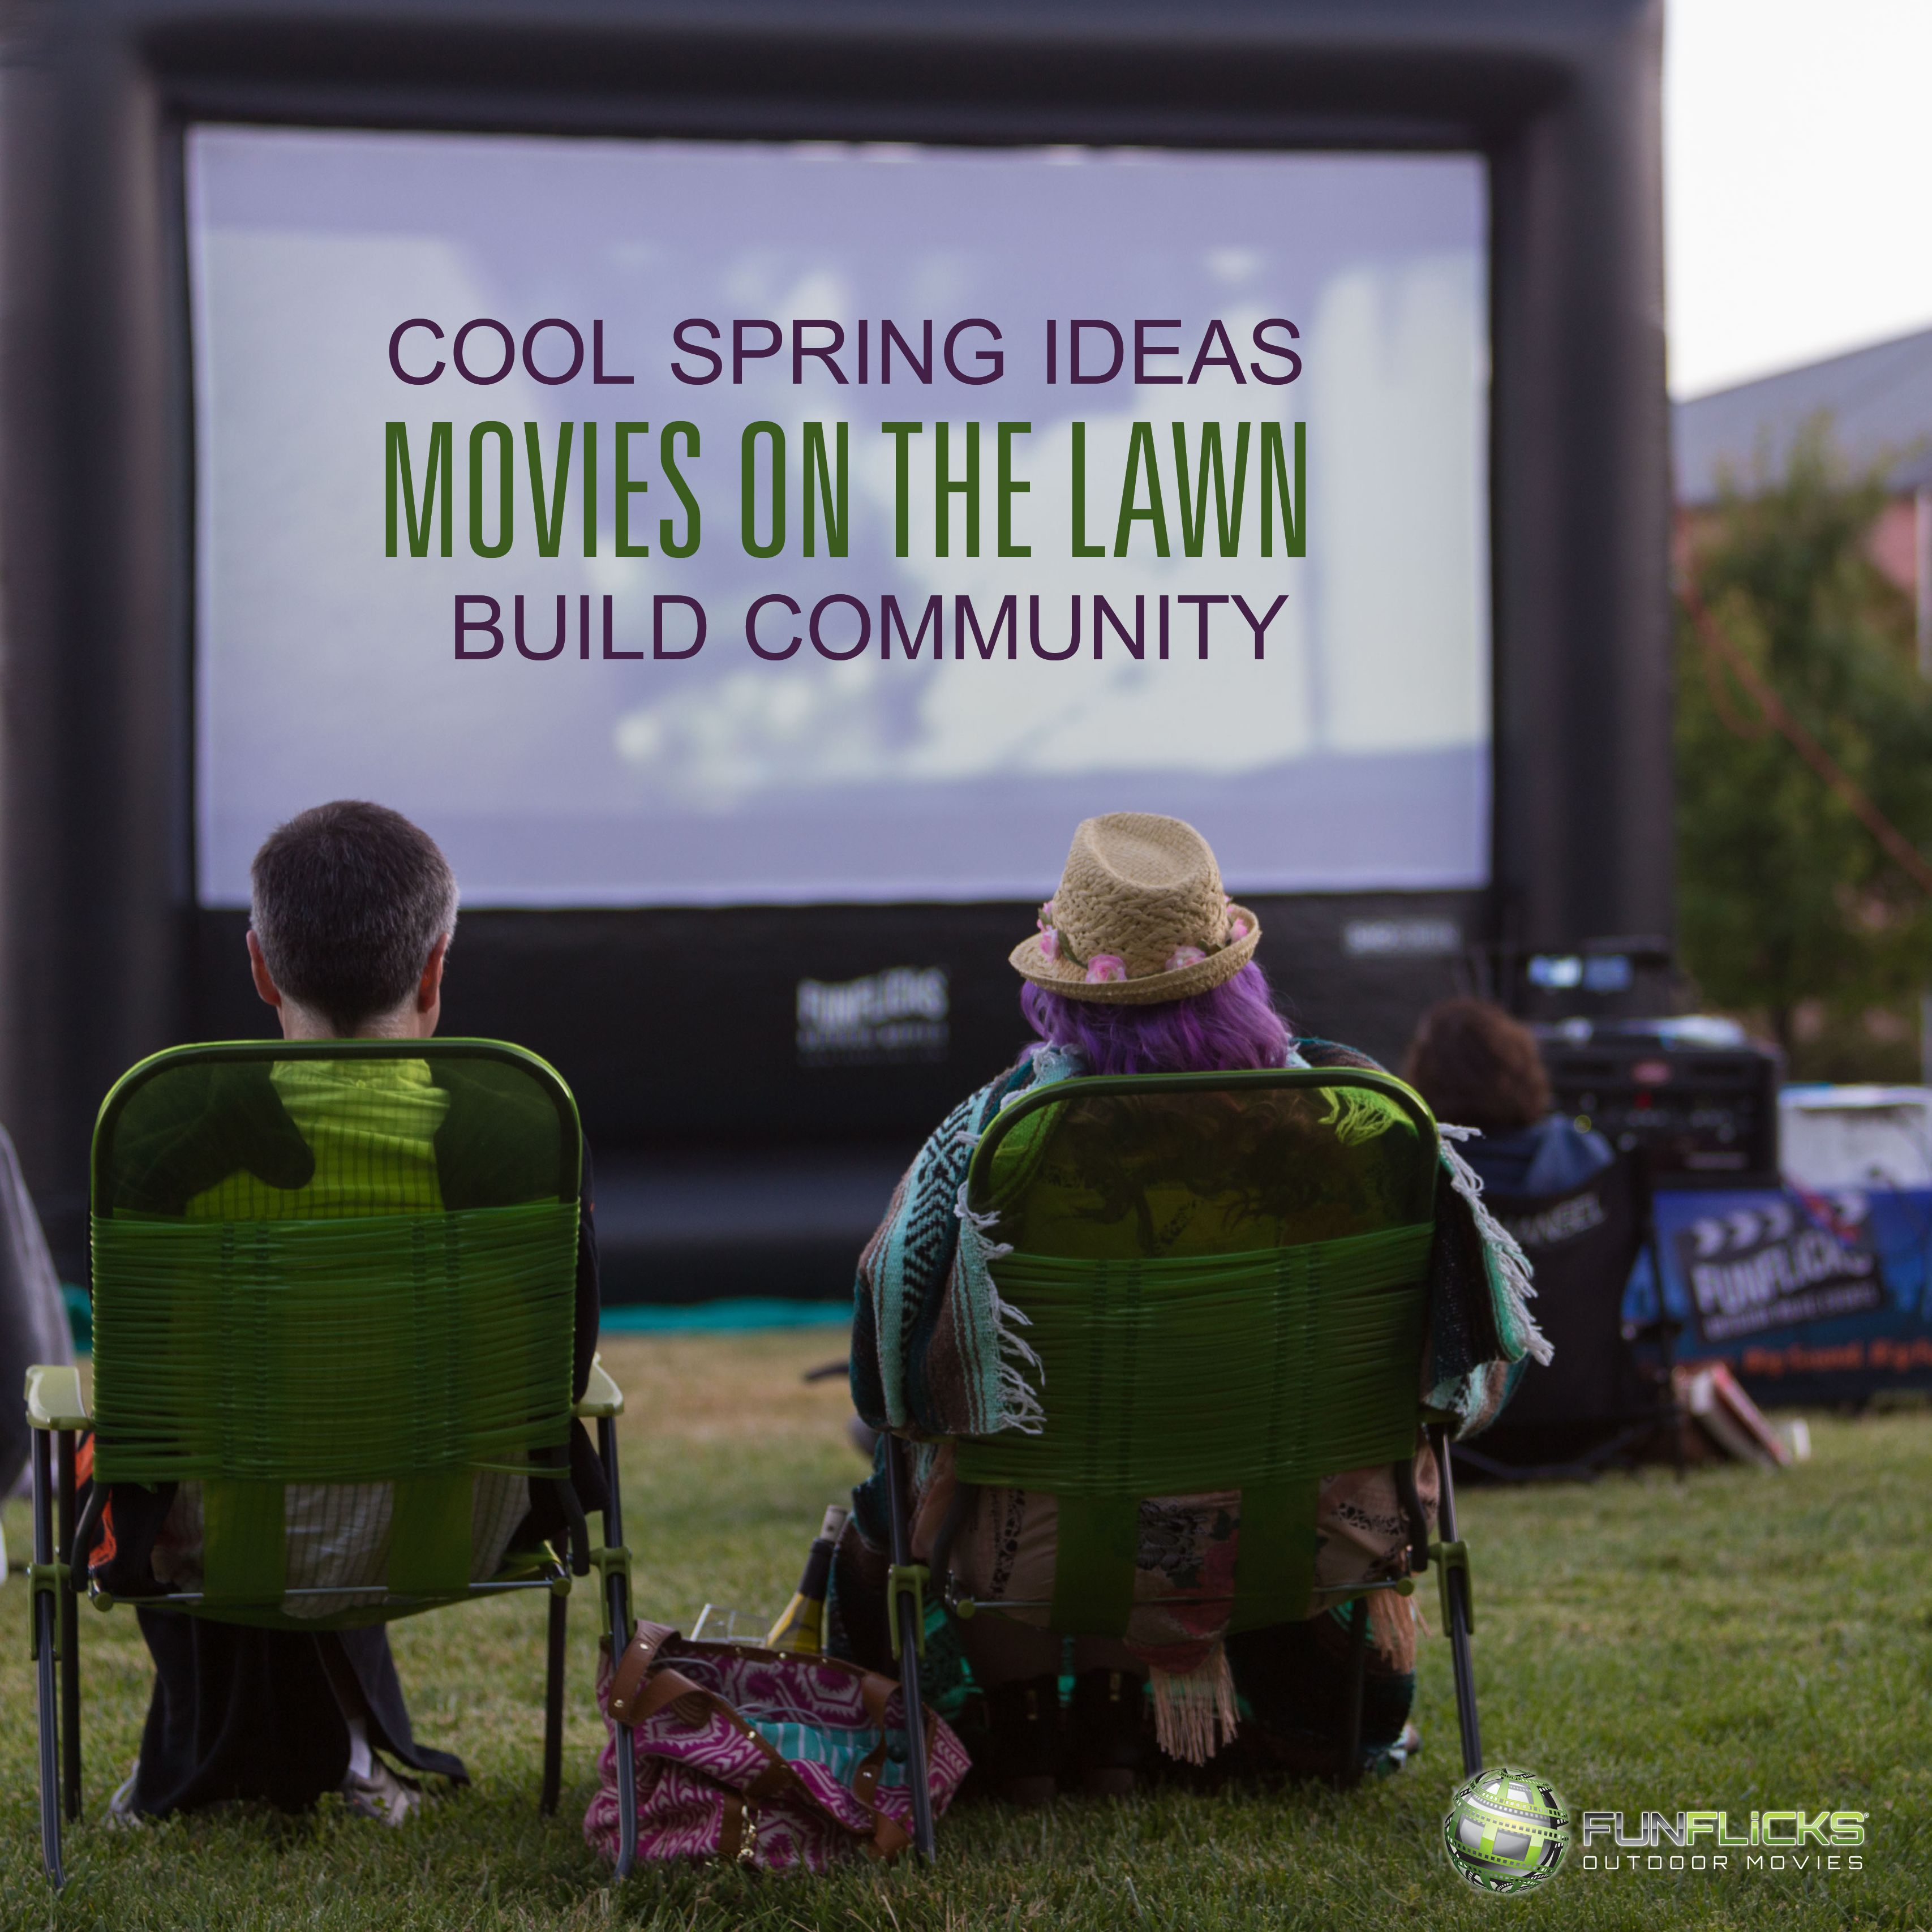 Cool Spring Ideas To Build Community Movies On The Lawn